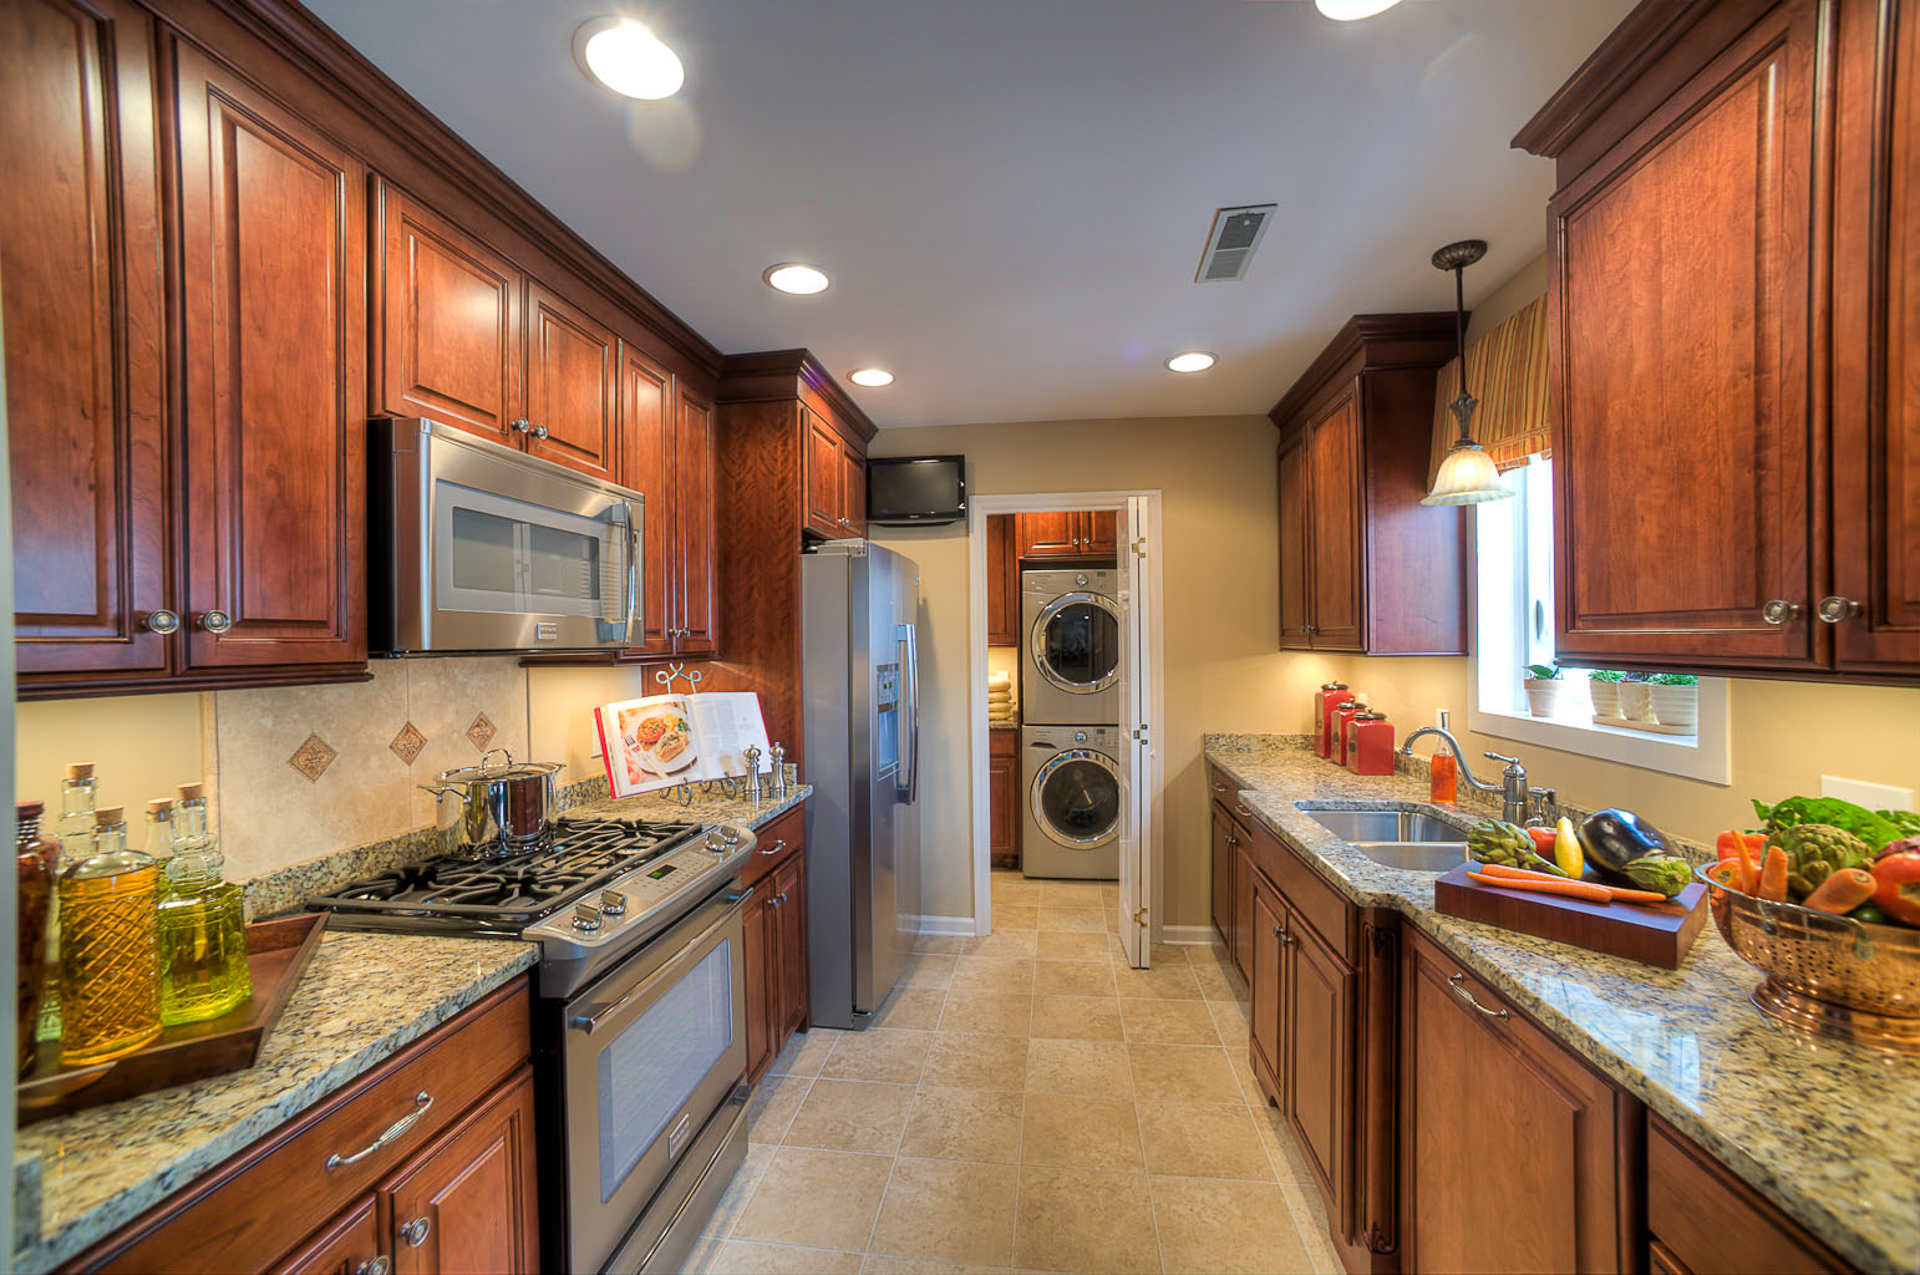 Galley Kitchen Remodel 2 Haskell Interiors